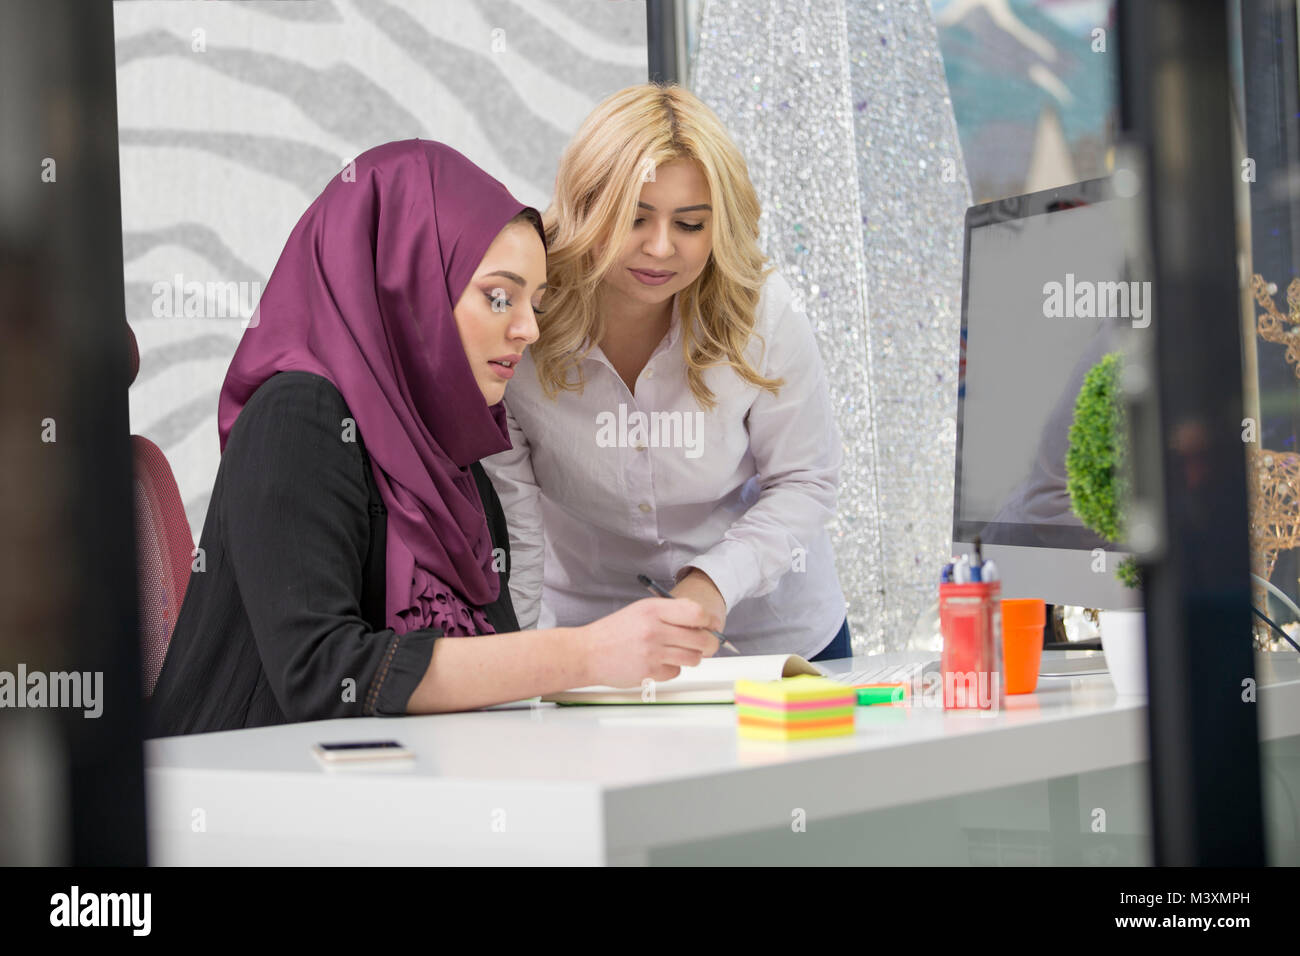 European woman and asian muslim woman working together on same project - Stock Image